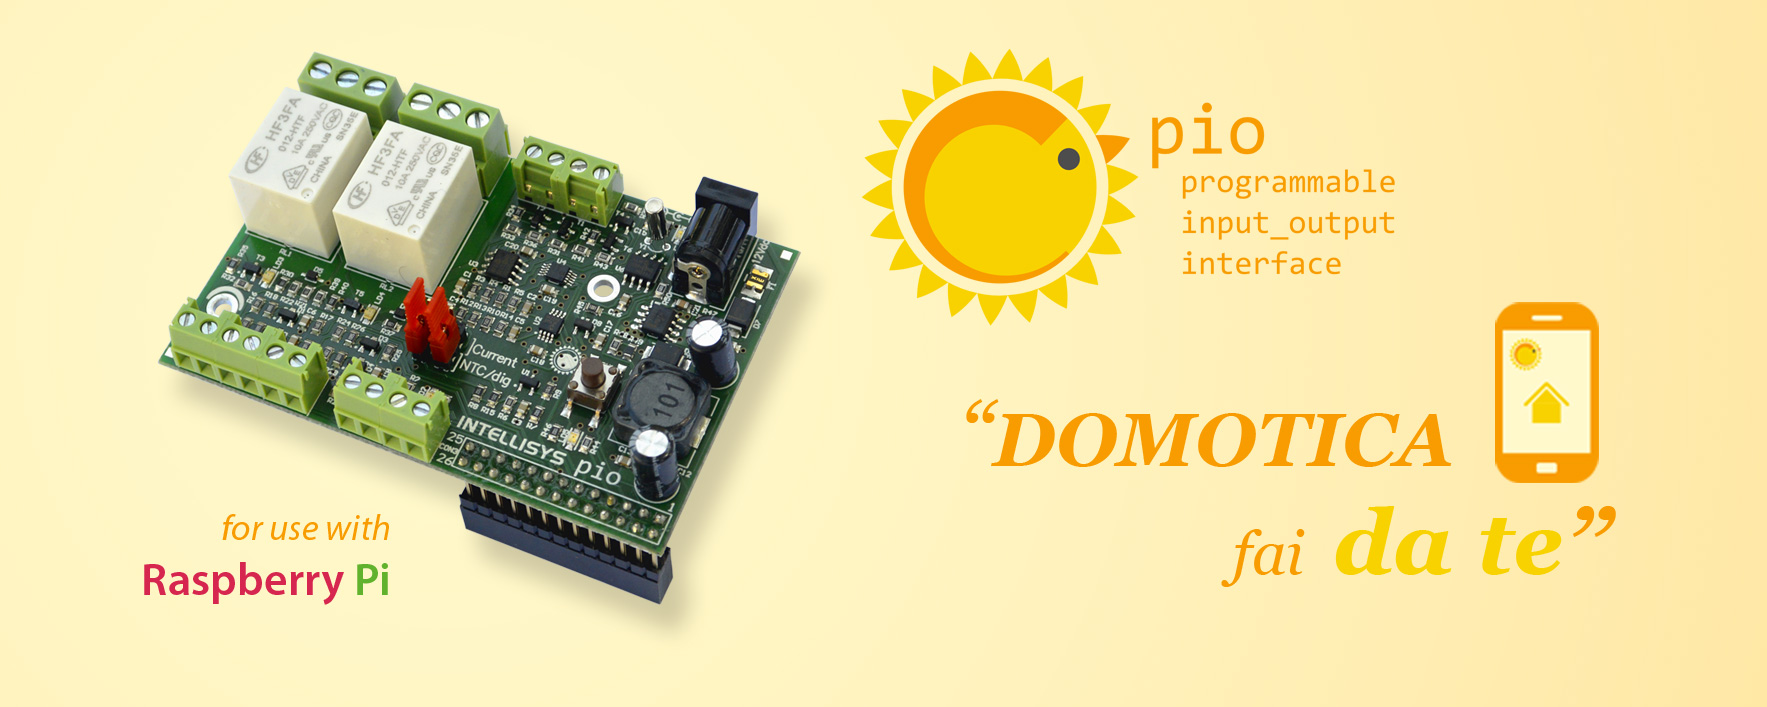 PIO Programmable Input_Output Interface - Domotica fai da te